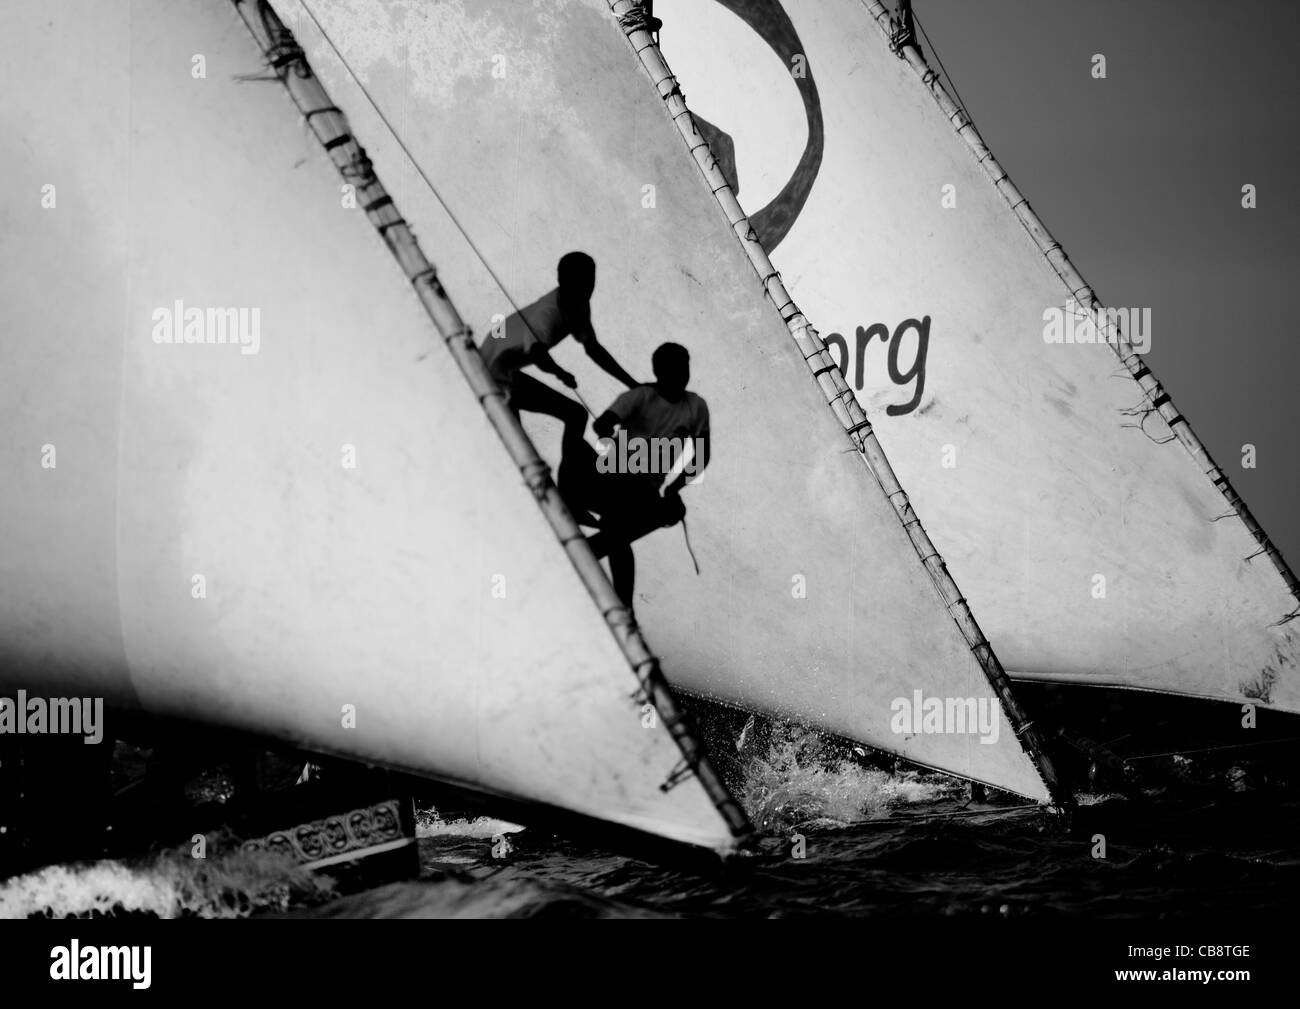 Steerage Of Dhow During The Dhow Race, Maulidi Festival, Lamu, Kenya - Stock Image